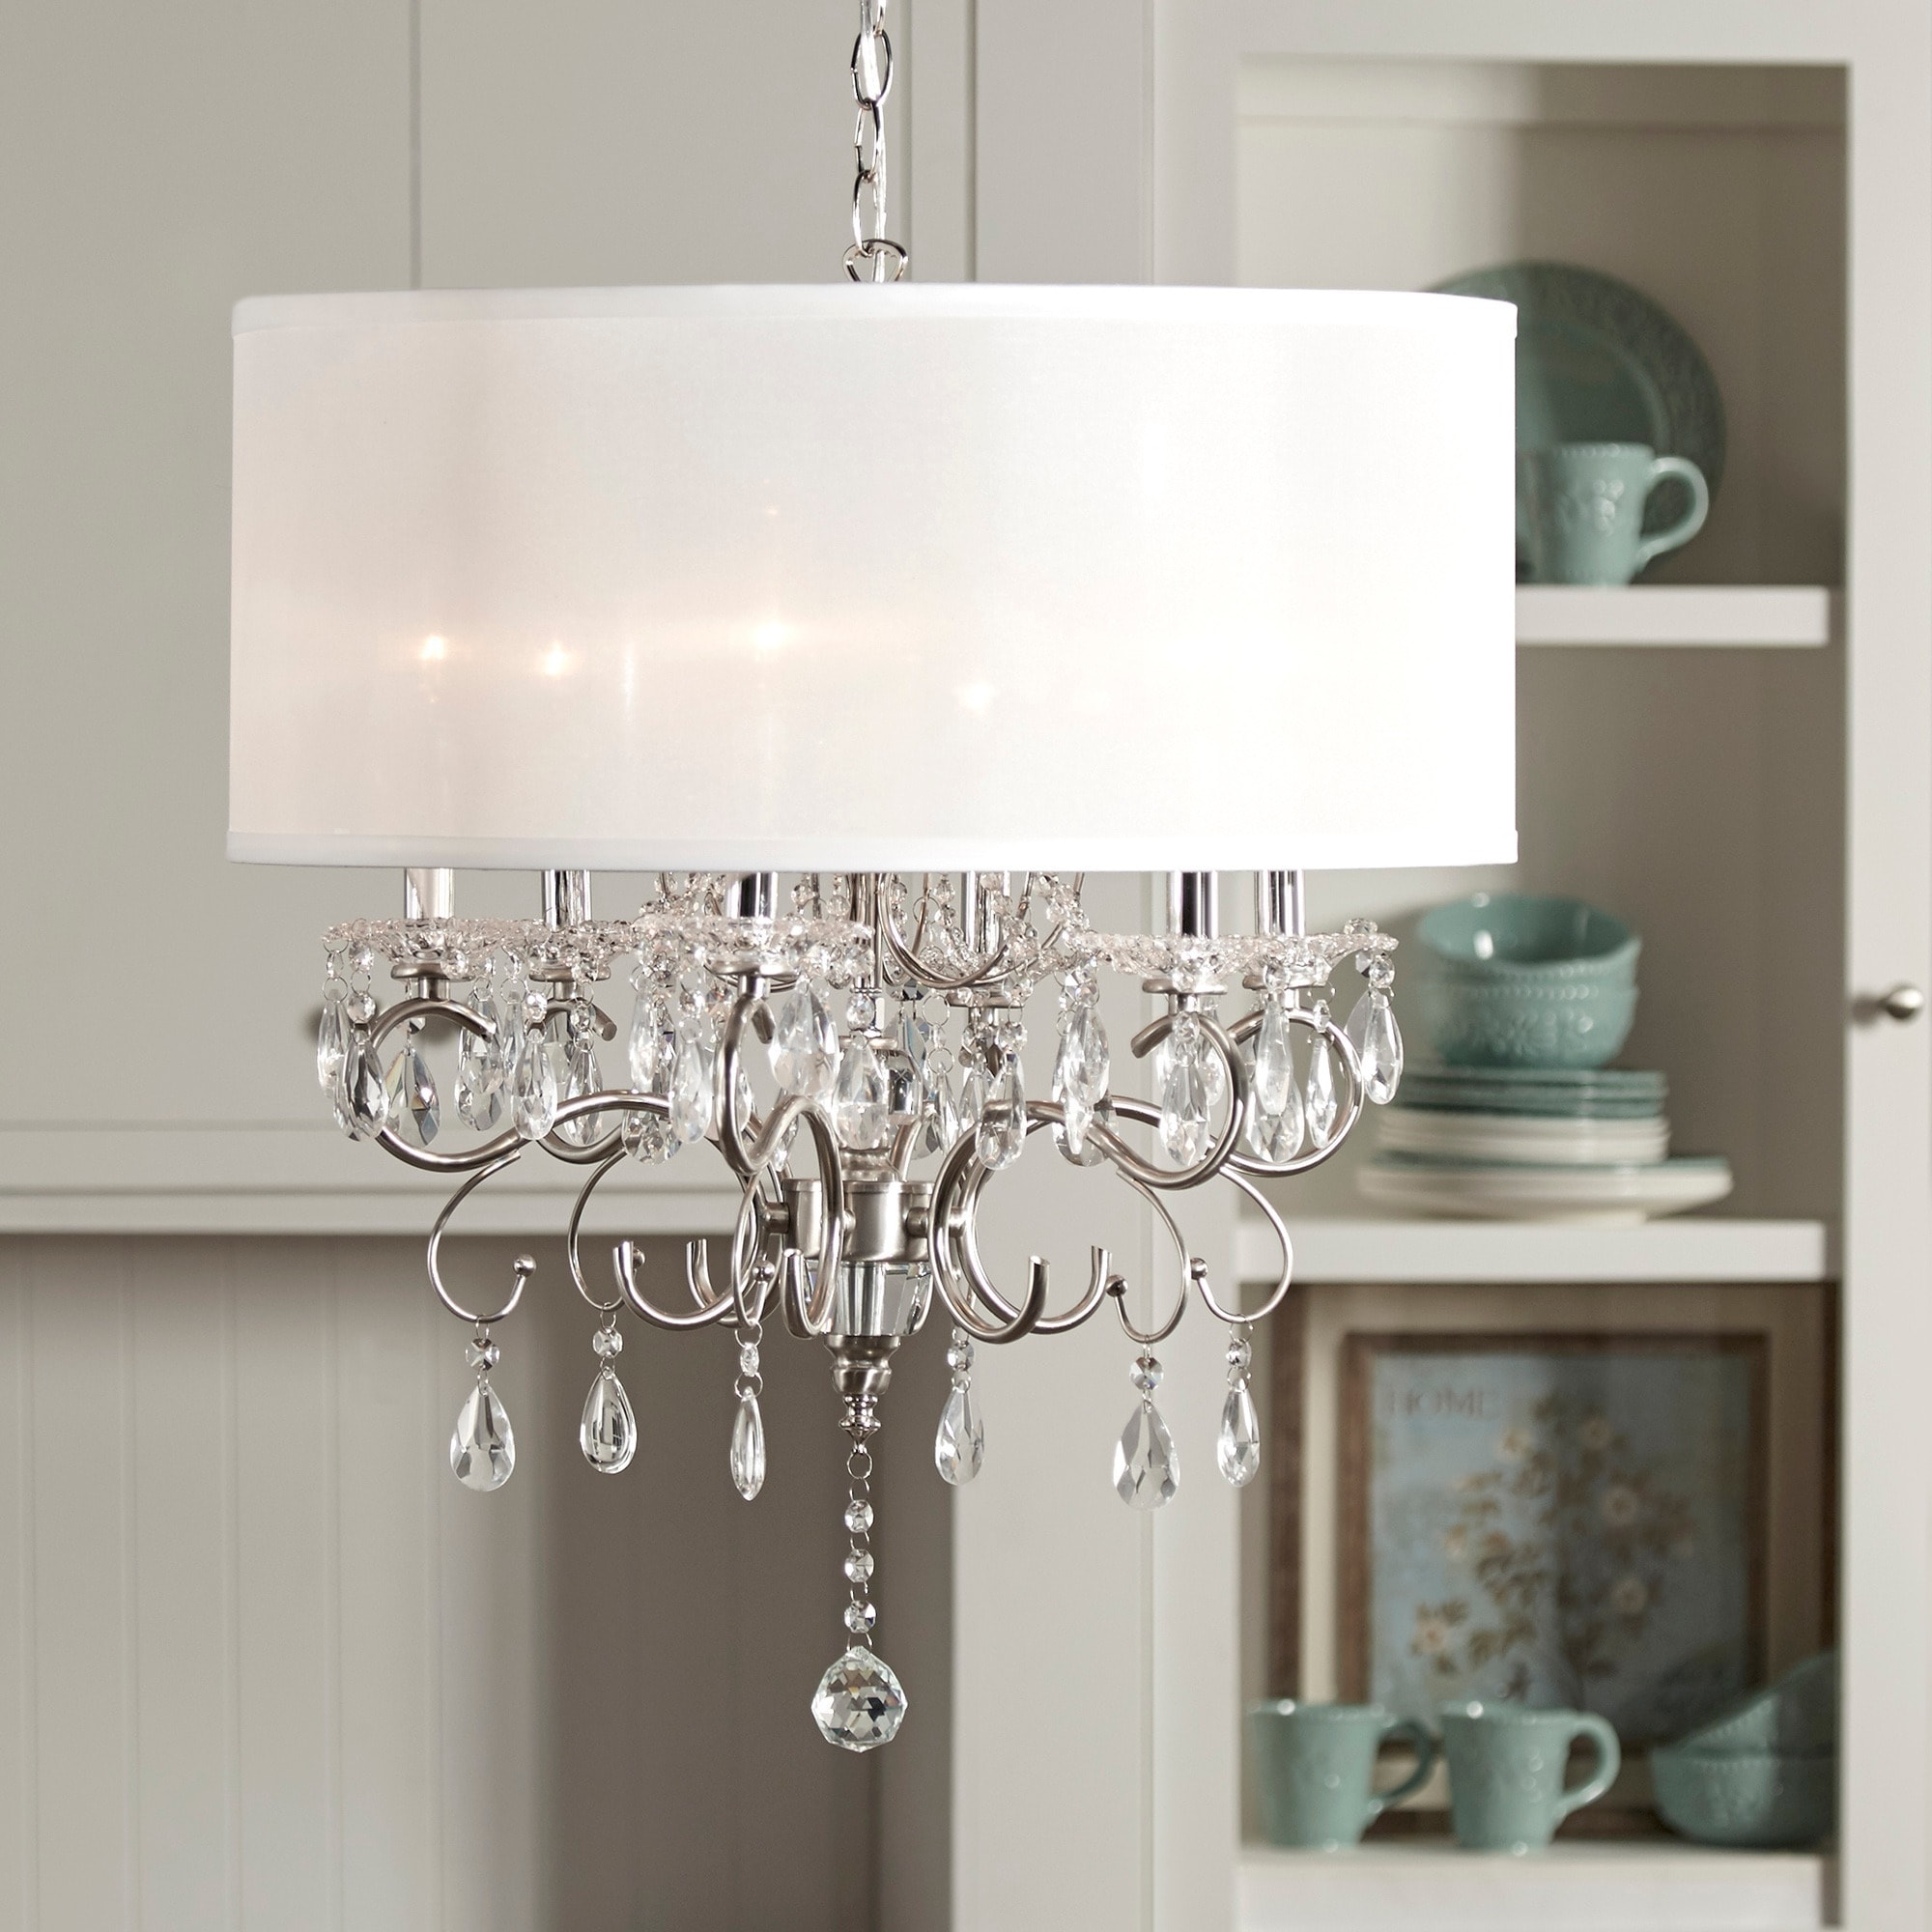 Silver mist hanging crystal drum shade chandelier by inspire q silver mist hanging crystal drum shade chandelier by inspire q classic free shipping today overstock 13689270 arubaitofo Gallery